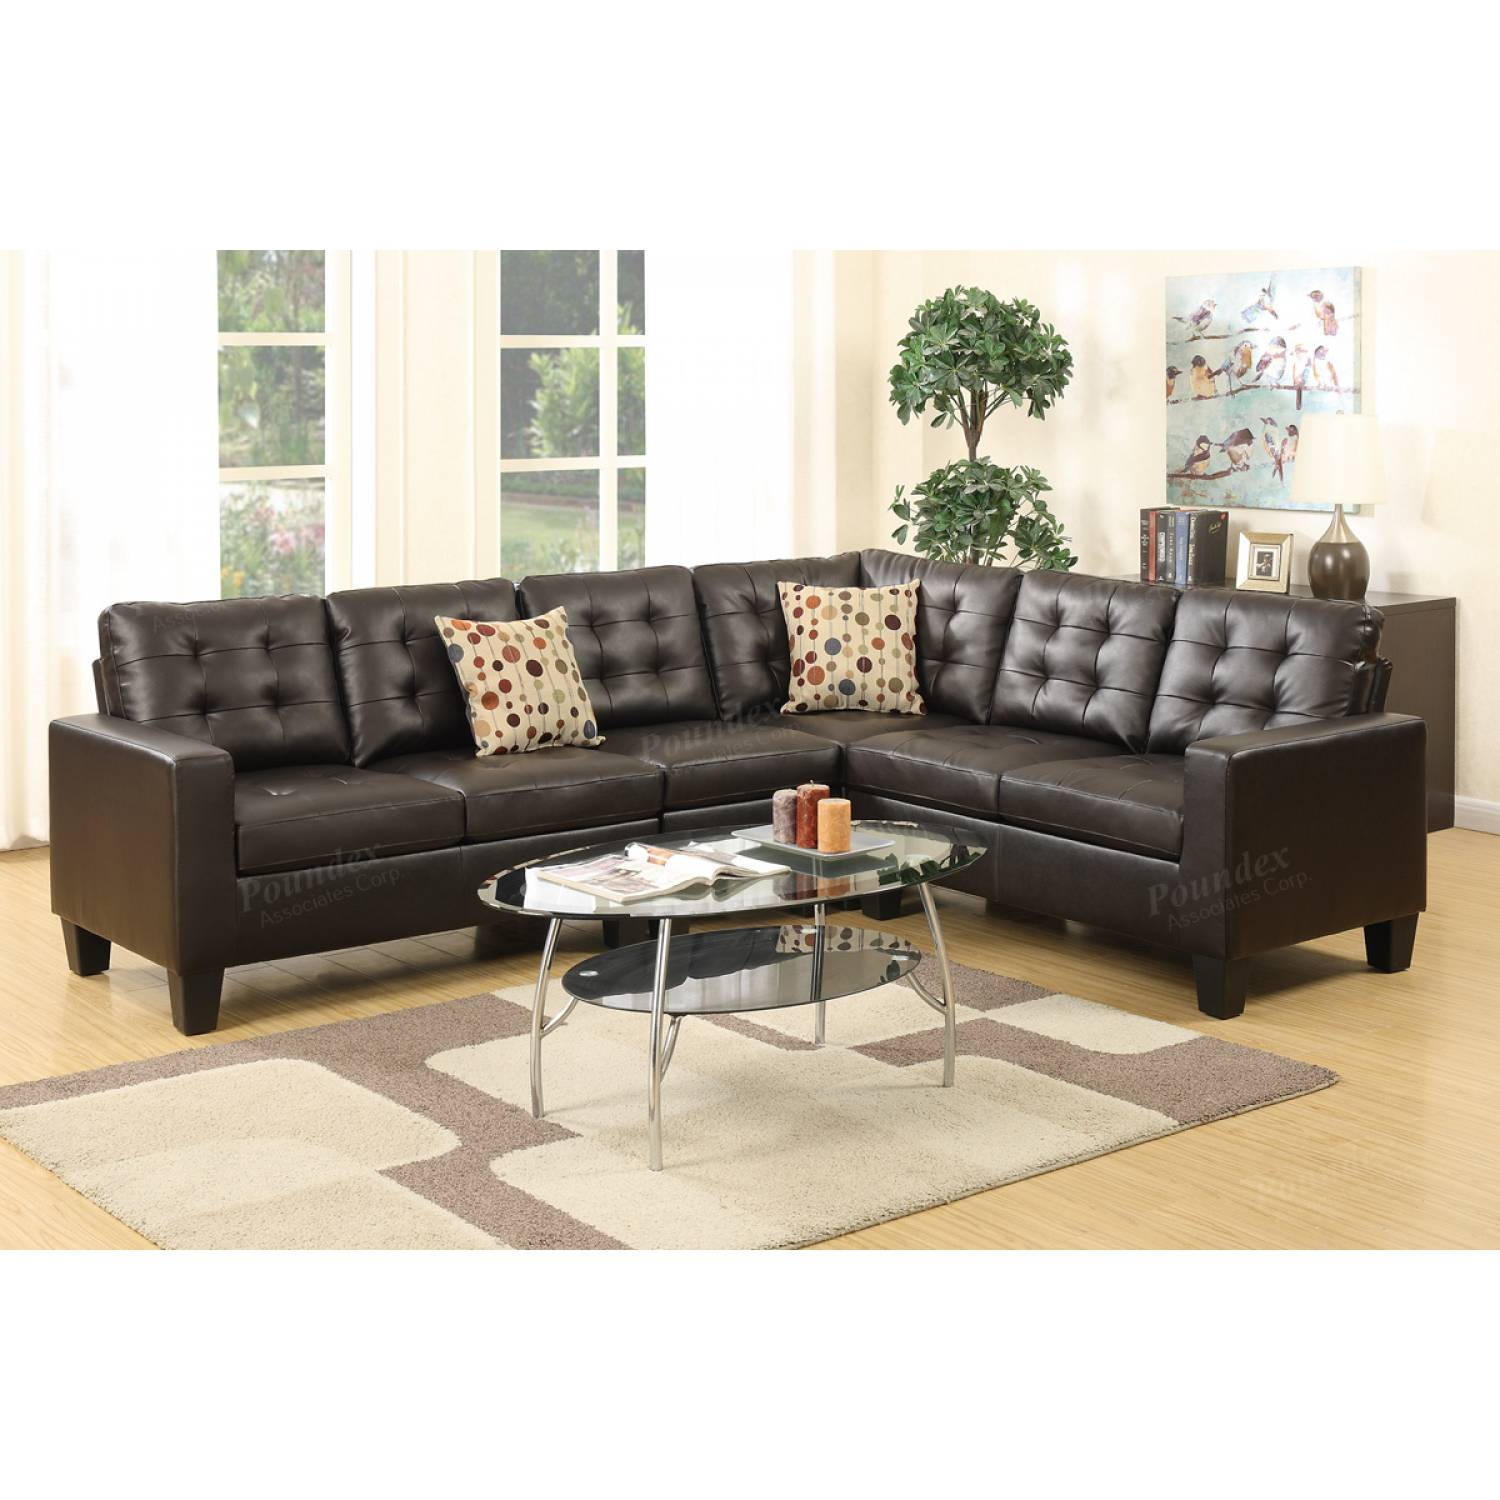 Direct Sofas 4 U | Sofa Review